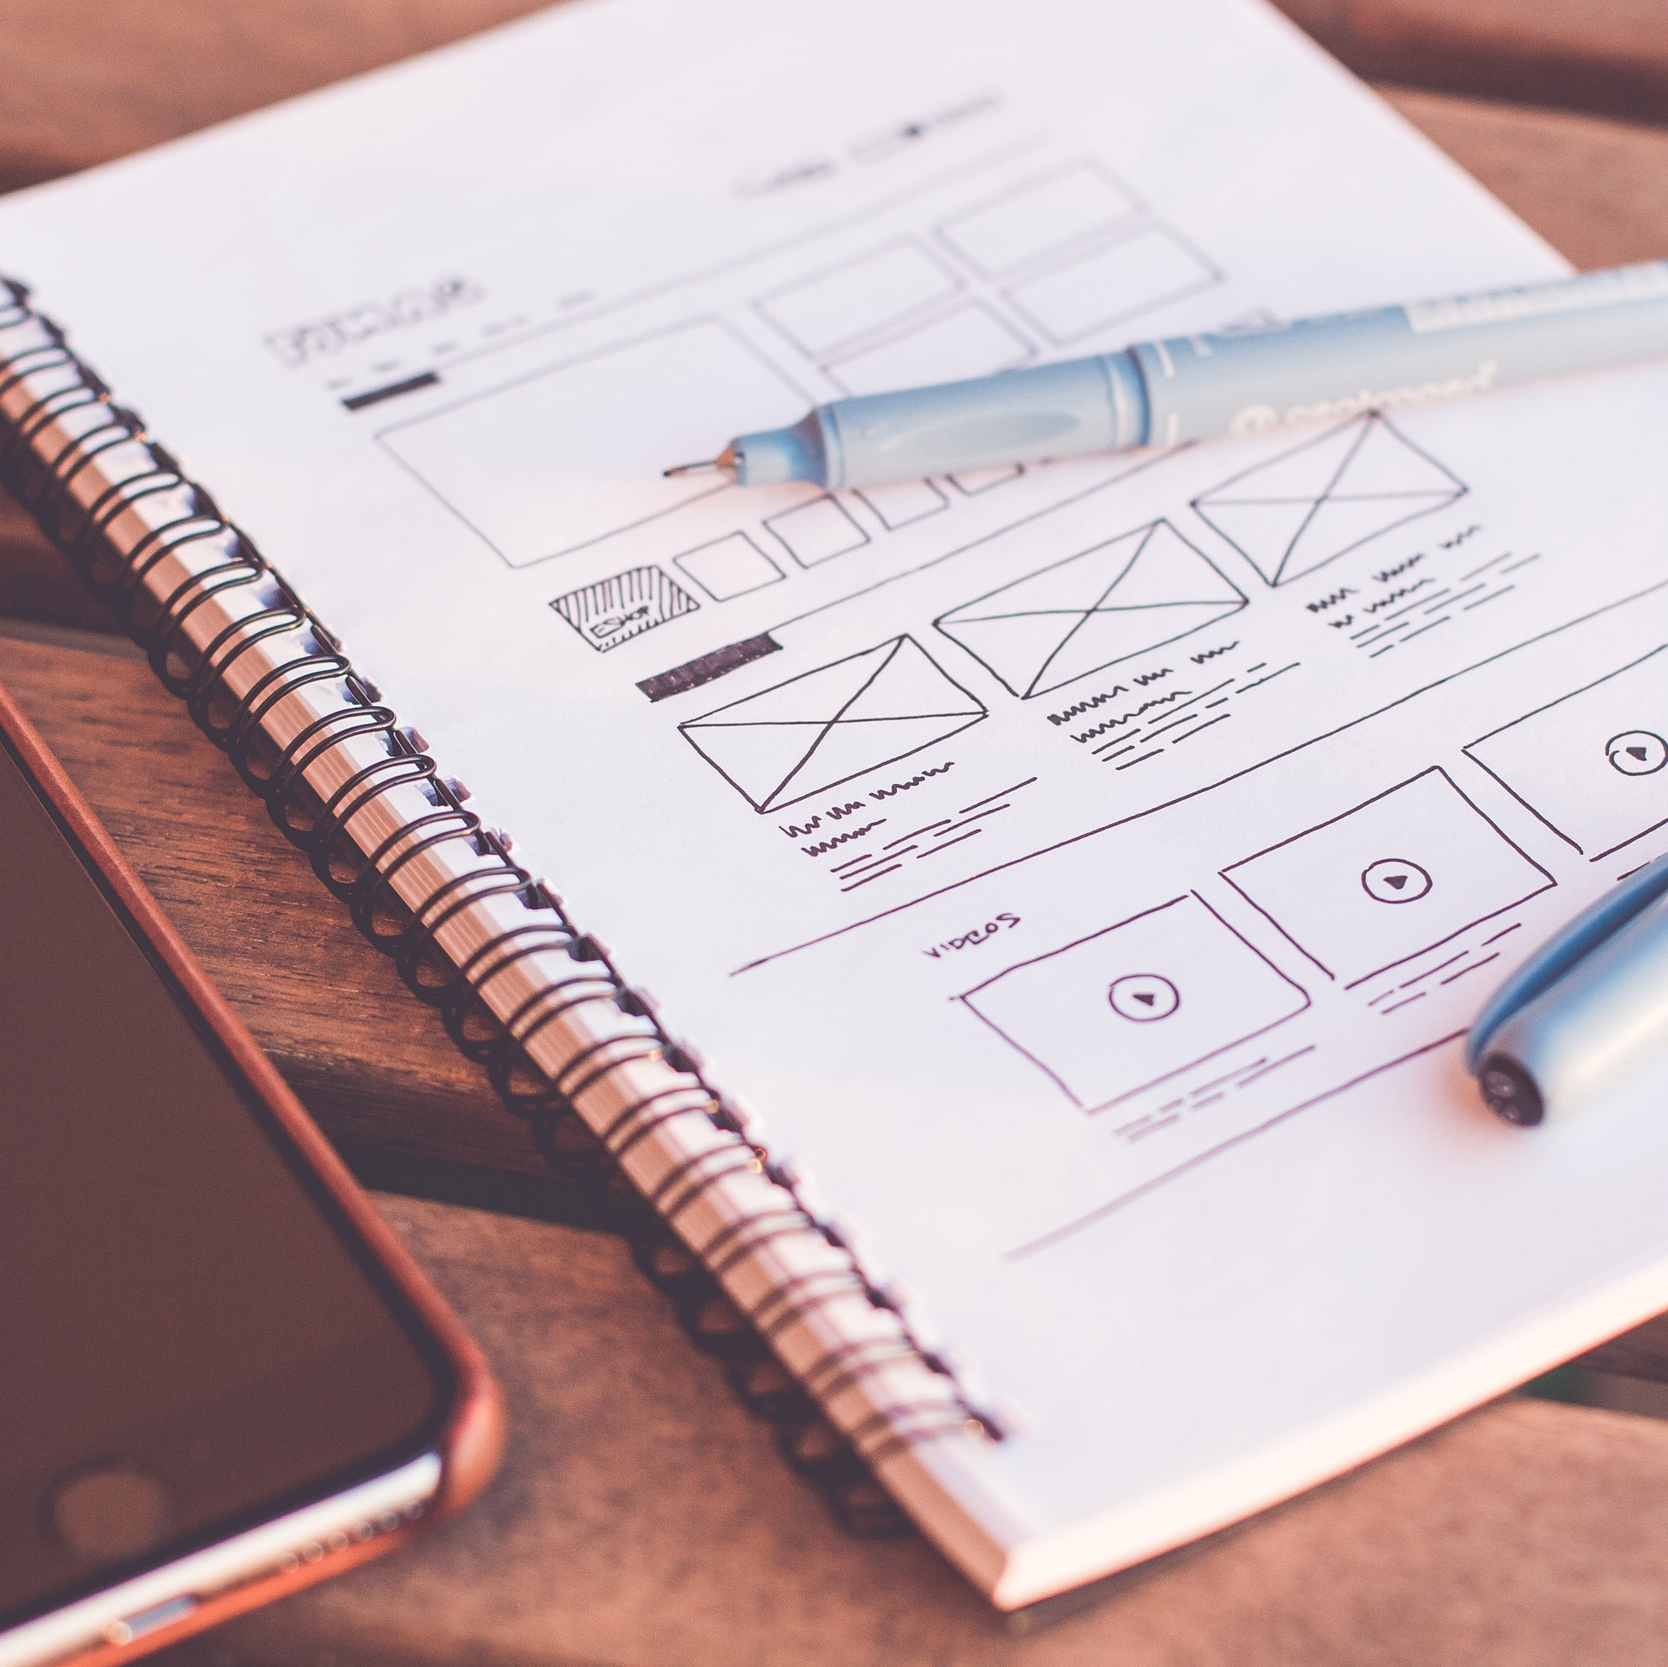 Drawing of wireframes